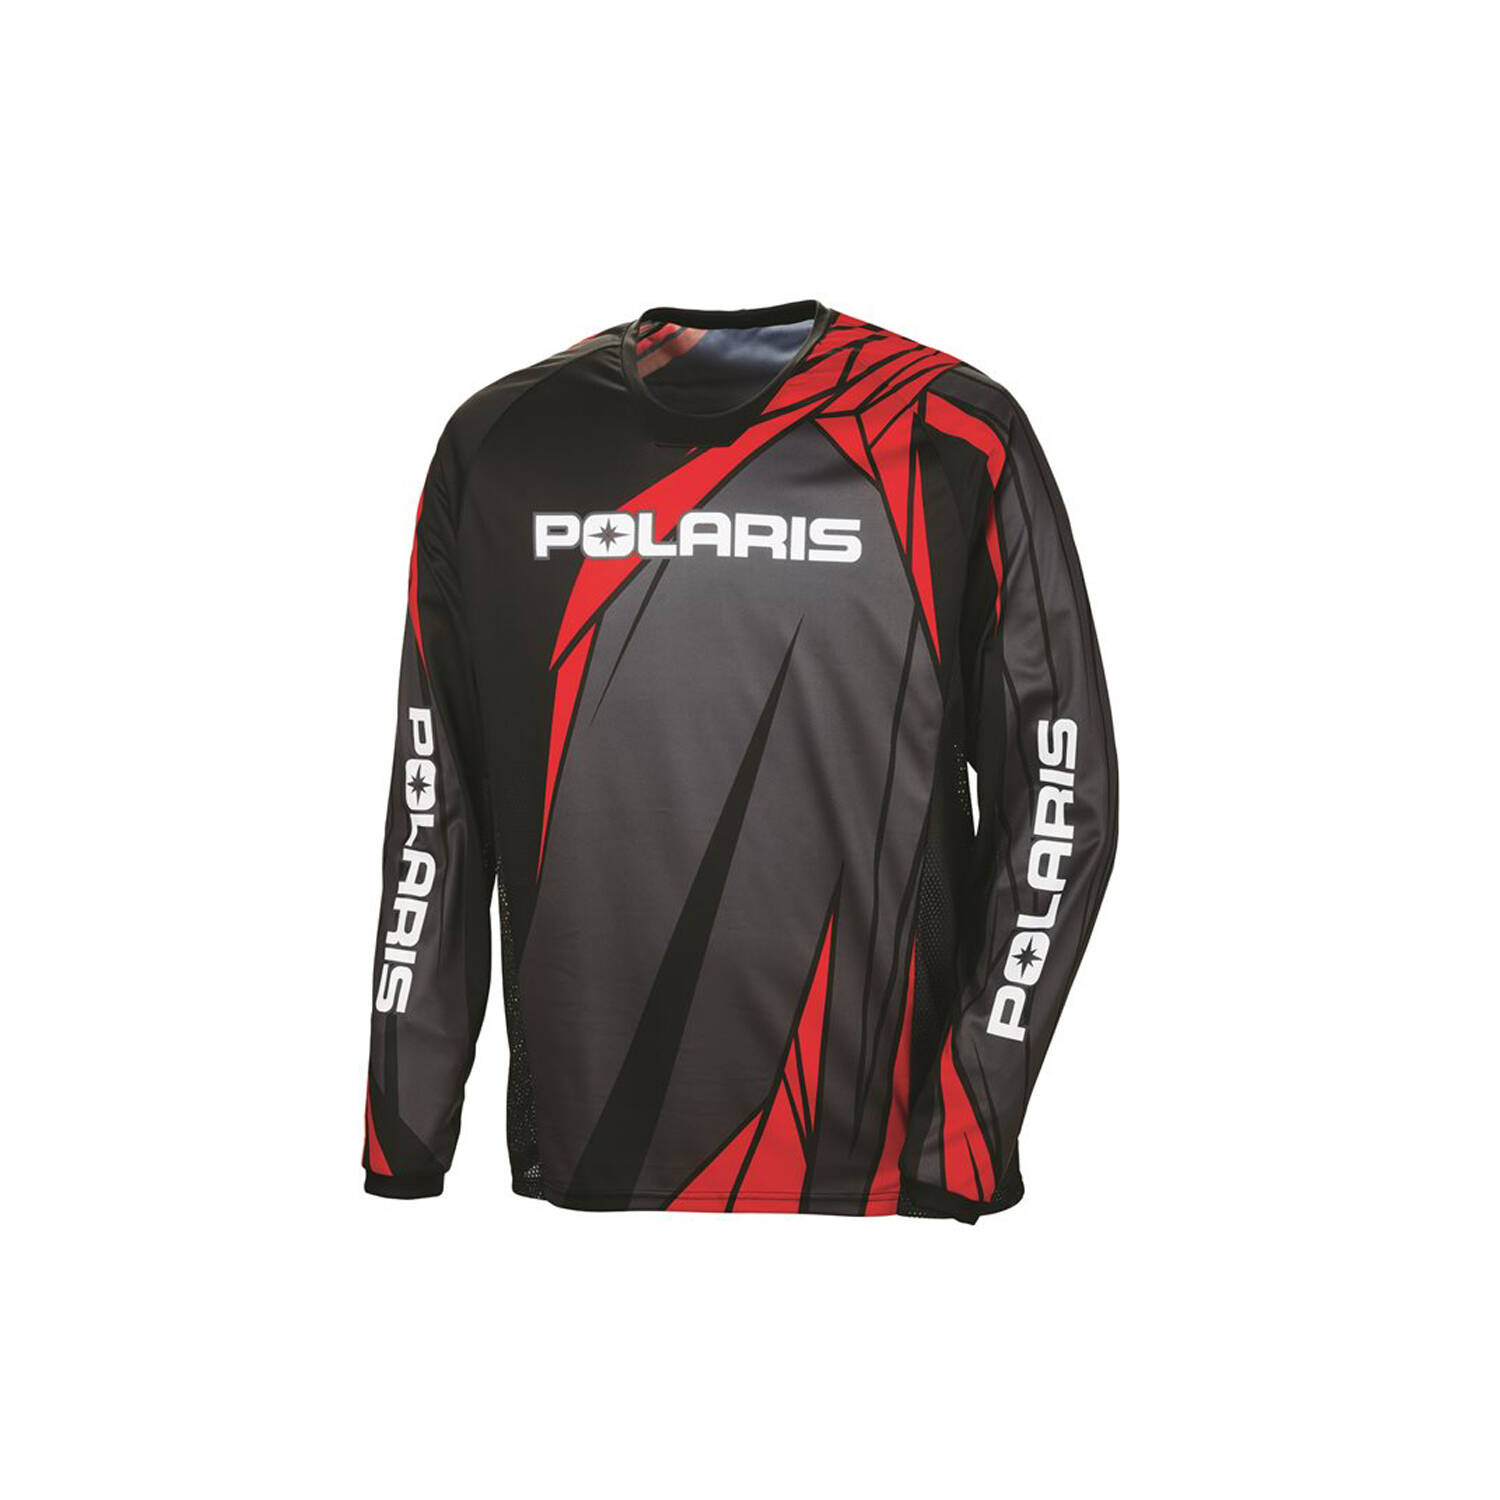 Unisex Long-Sleeve Off-Road Riding Jersey with Mesh Ventilated Panels, Red